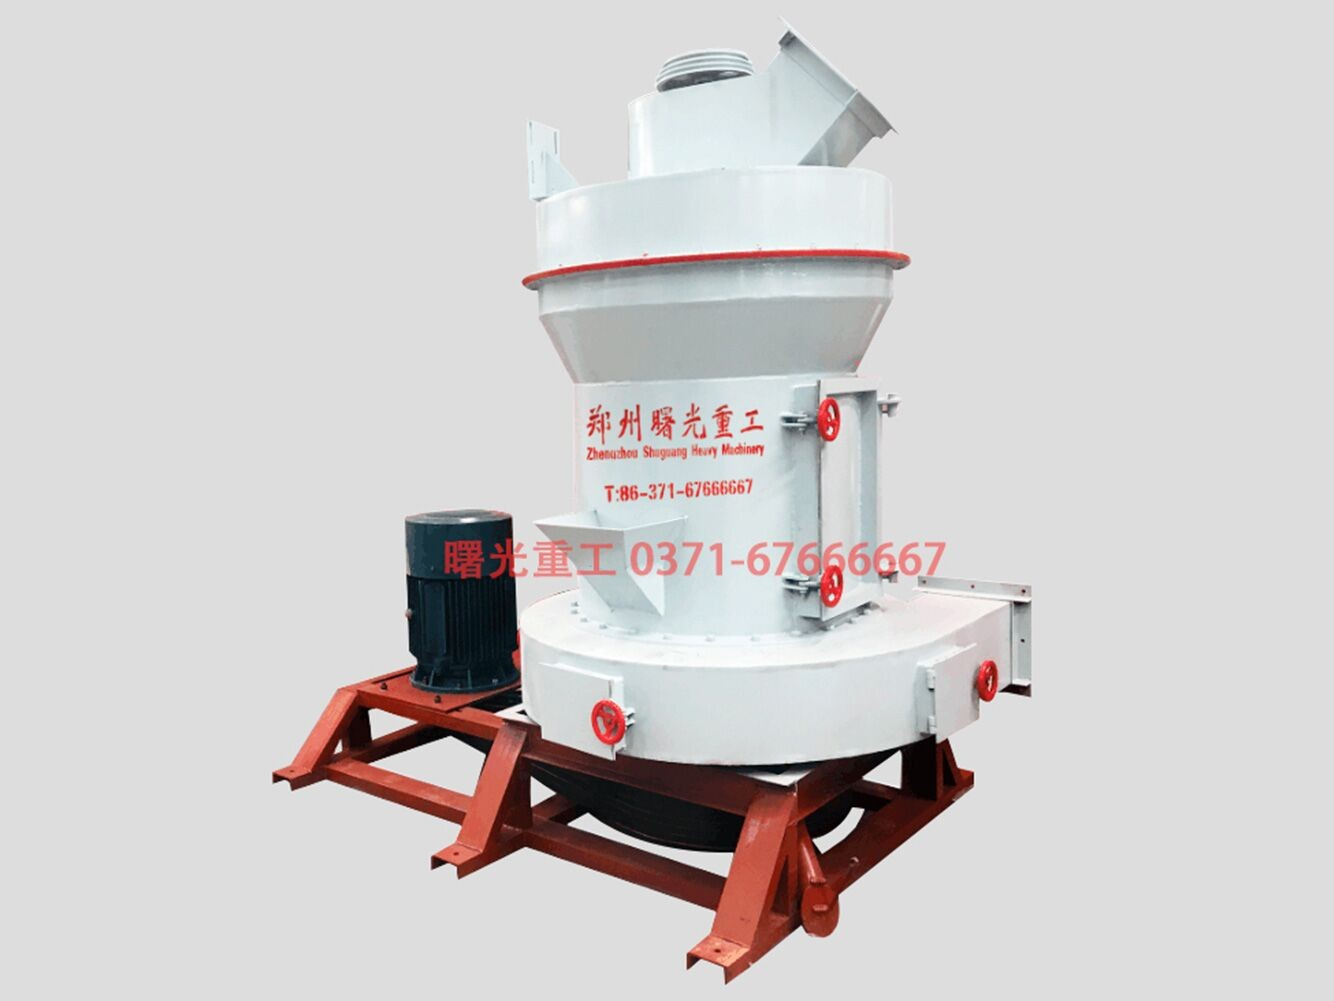 Bauxite grinding mill for sale